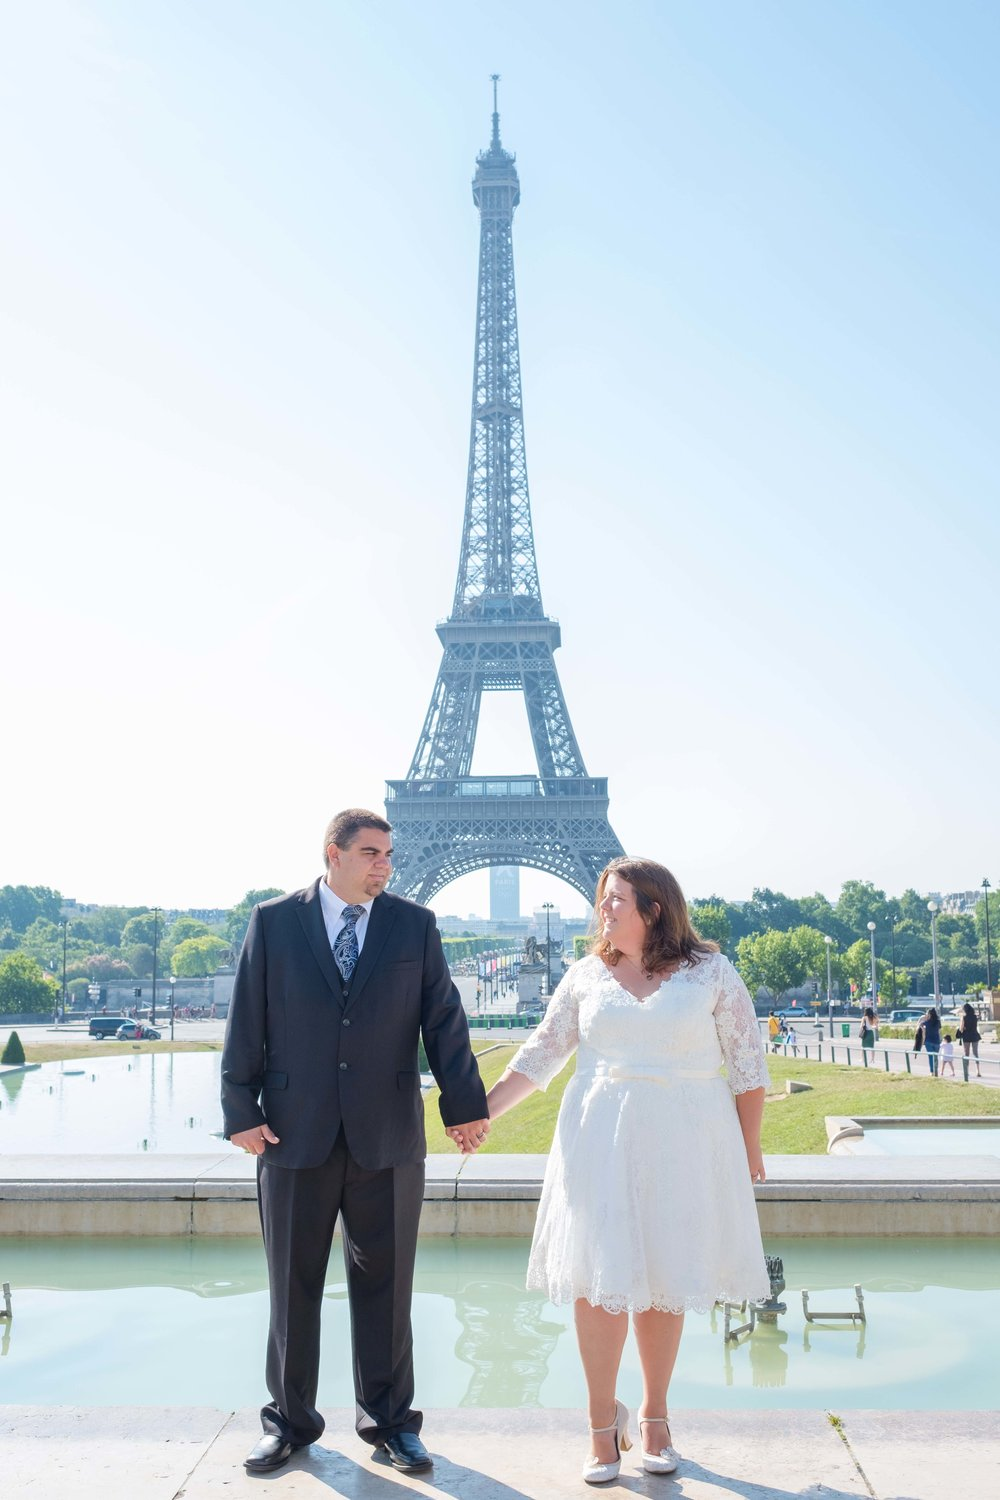 Newlyweds holding hands in Paris with Eiffel Tower in background